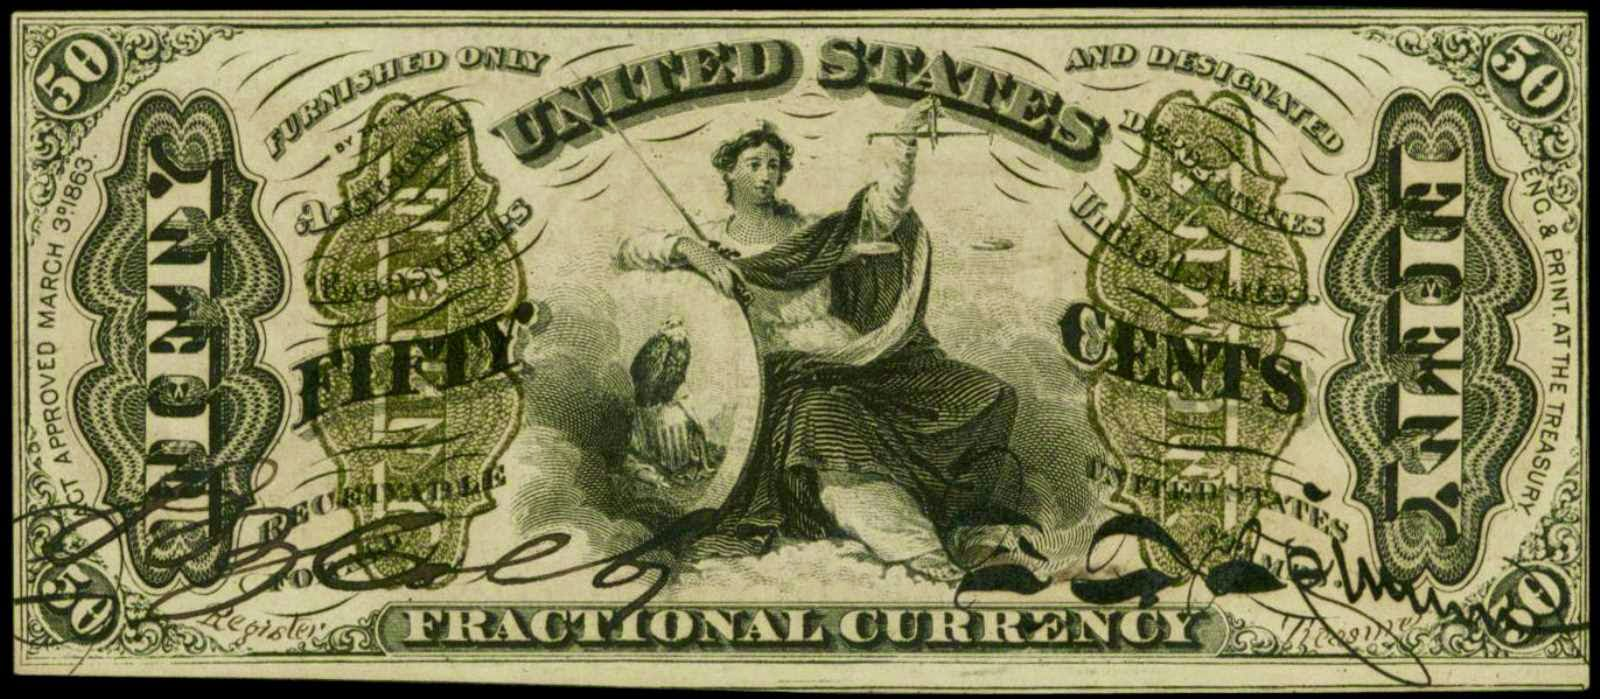 United States Fractional currency 50 Cents